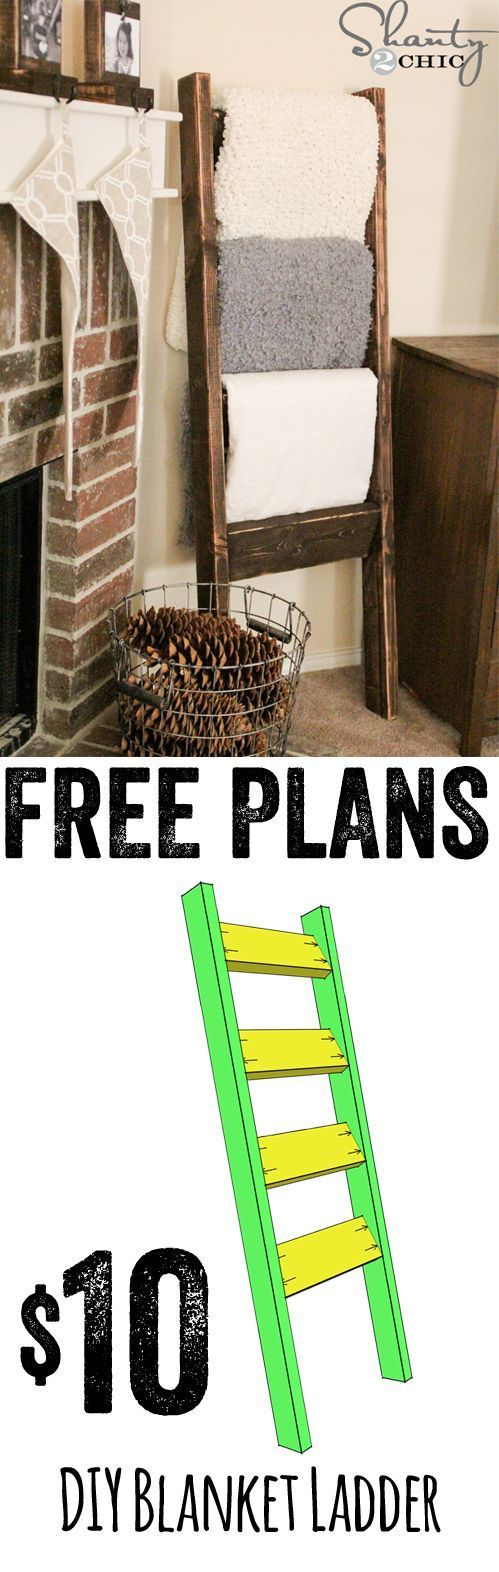 Plans for an easy and cheap blanket ladder--check out our selection of reclaimed wood to save even more!